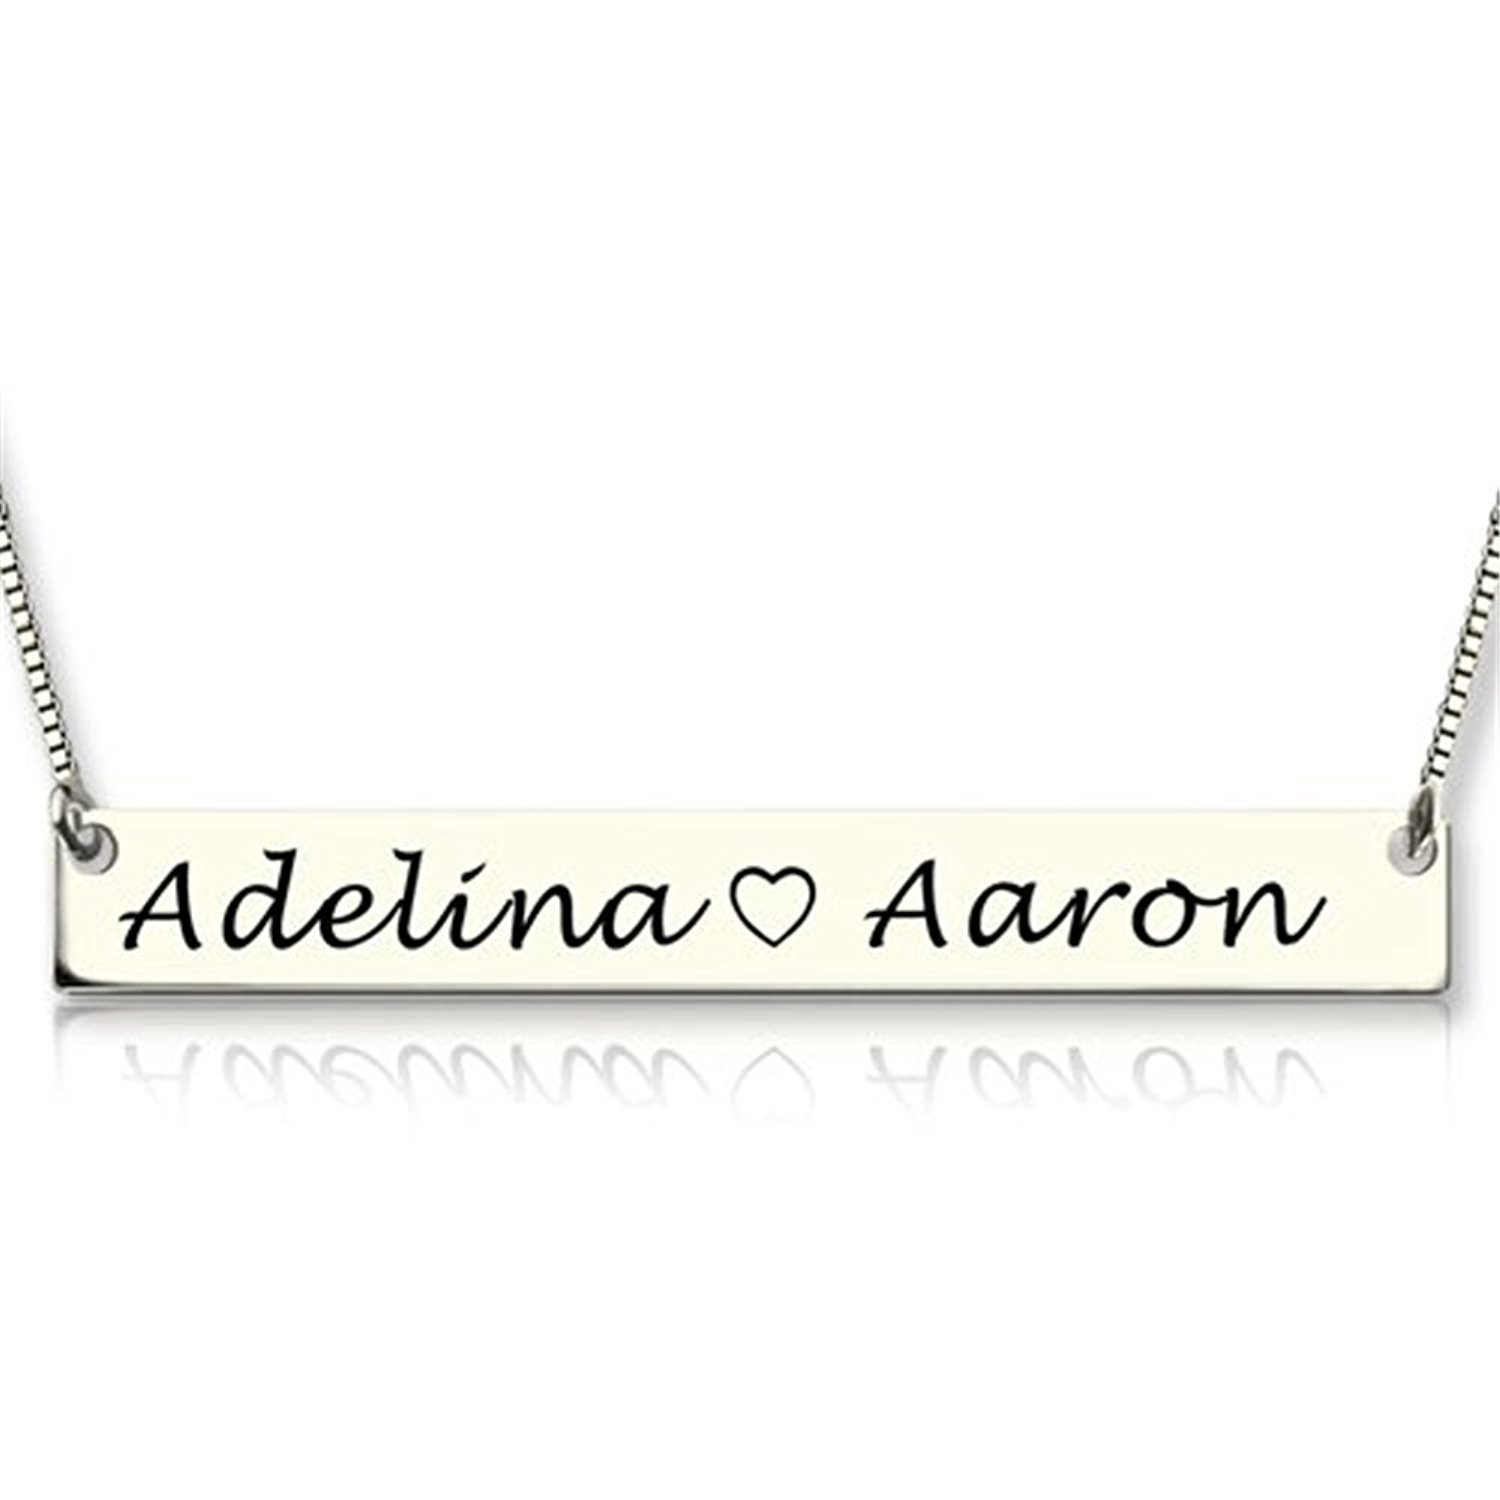 8531189b8dca0 Amazon.com: Bar Necklace Jewelry - Personalized Name Necklace ...